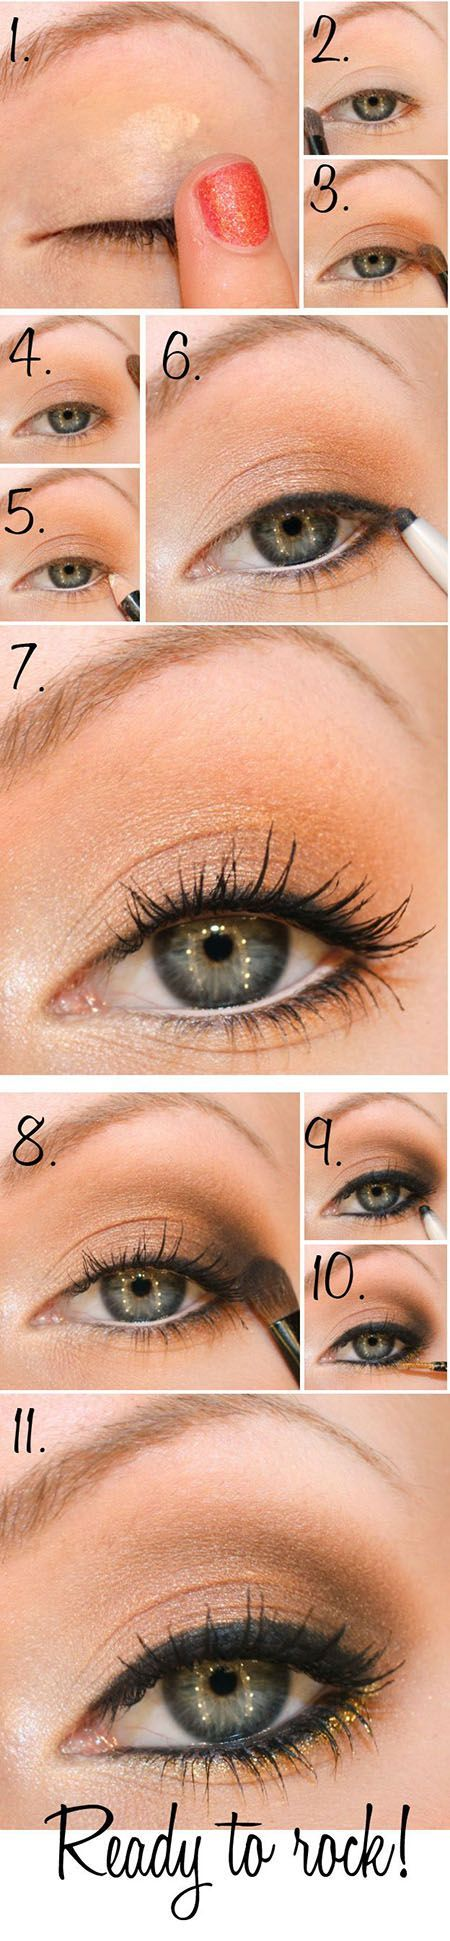 Find and save ideas about Makeup Tips on Pinterest, the world's catalog of ideas. | See more about Makeup, Smokey Eye Makeup and Eye Makeup. affiliate link